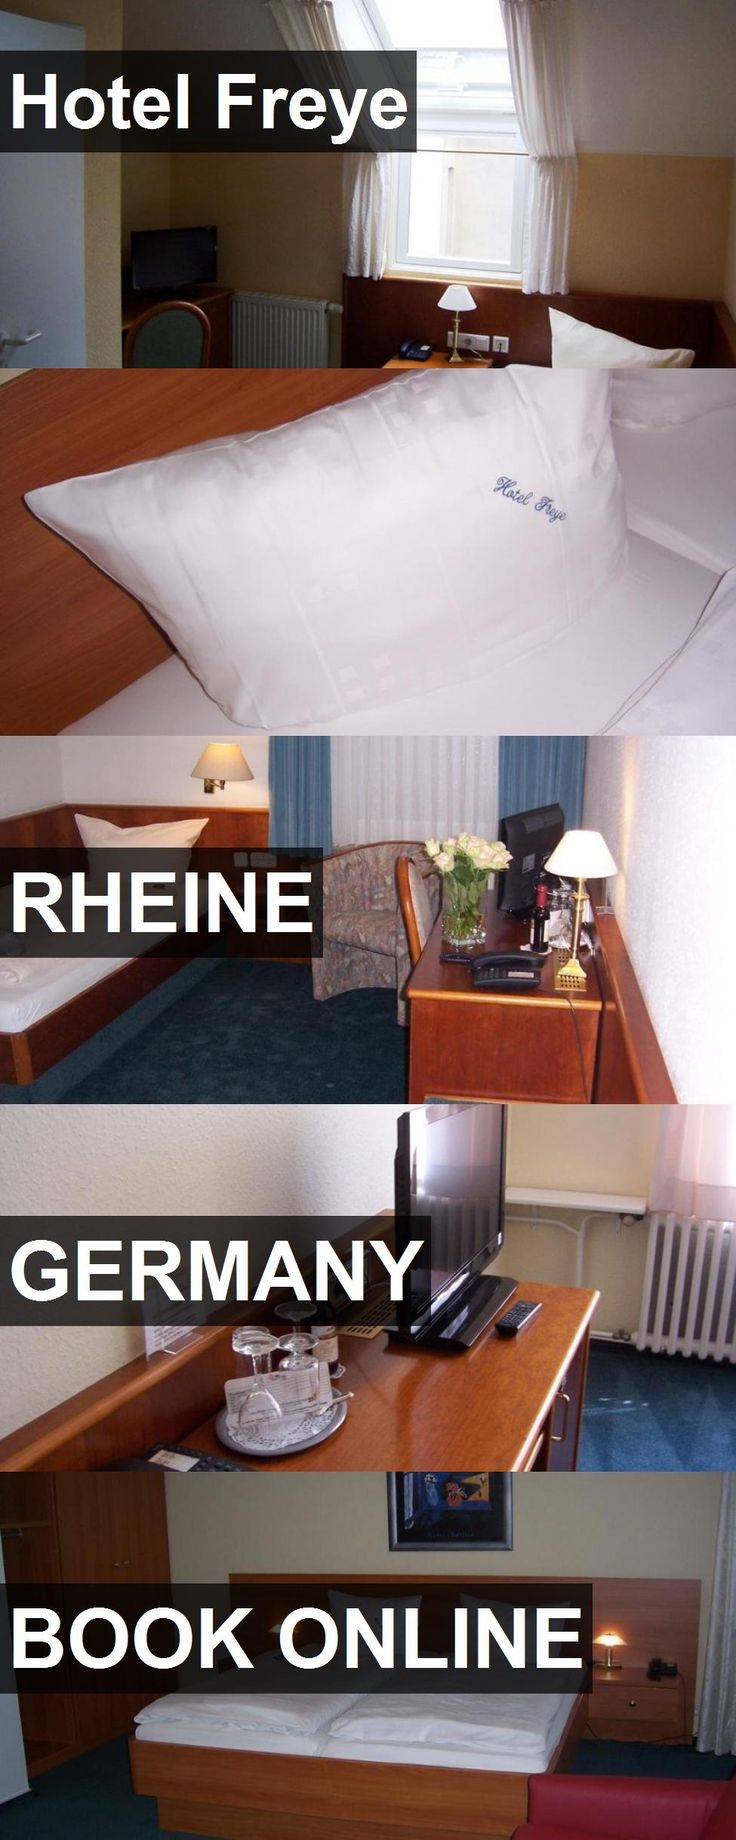 Hotel Hotel Freye in Rheine, Germany. For more information, photos, reviews and best prices please follow the link. #Germany #Rheine #HotelFreye #hotel #travel #vacation